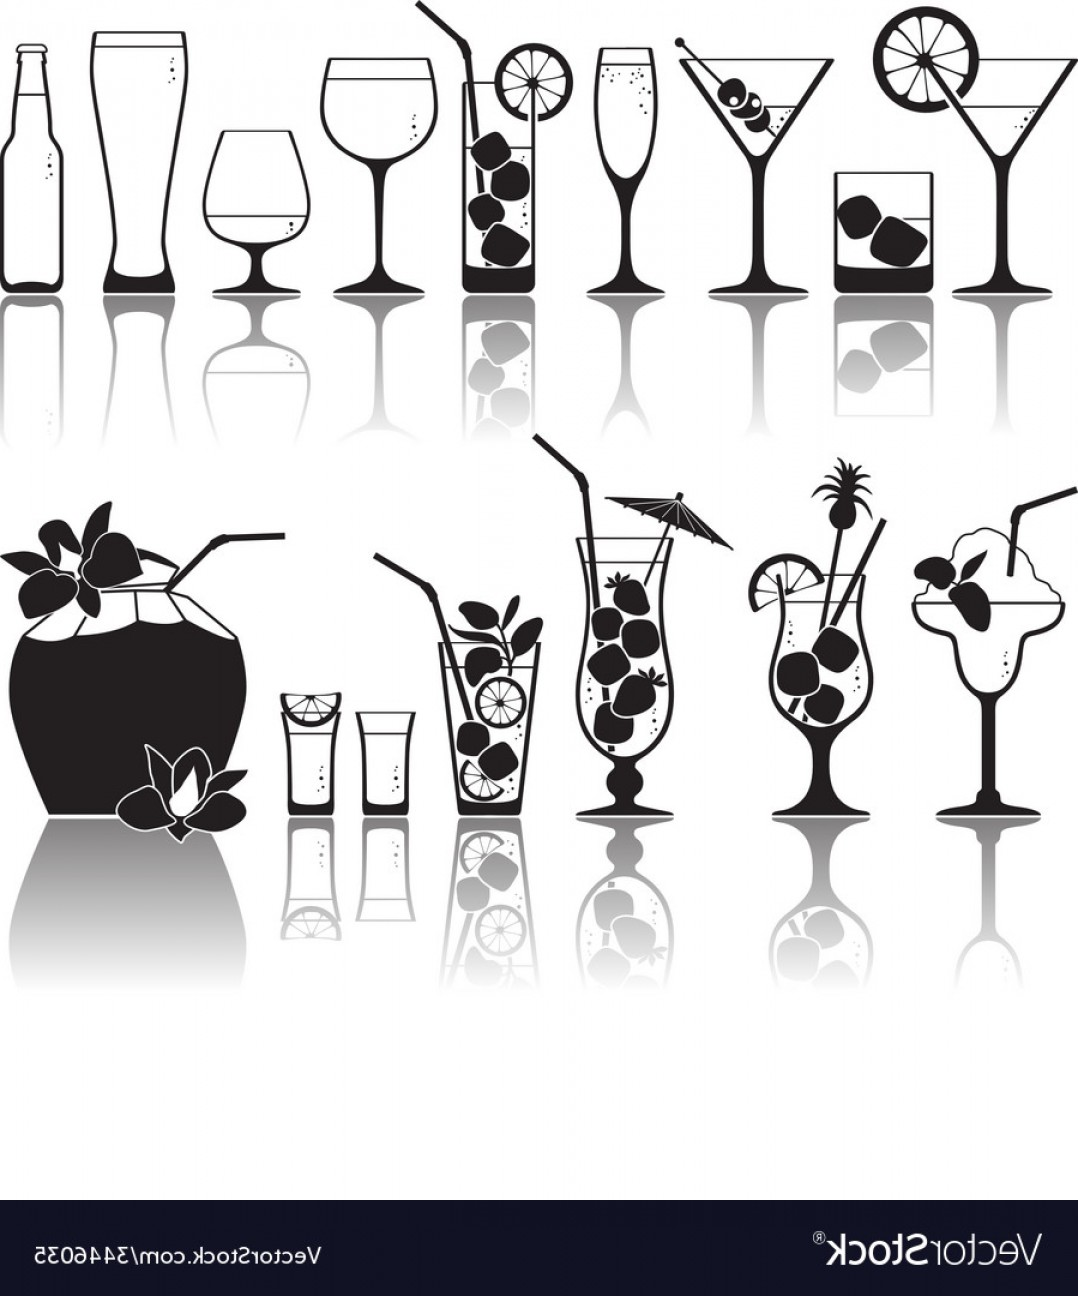 Juice Vector Black: Different Kinds Of Glasses With Aperitifs Juice Vector